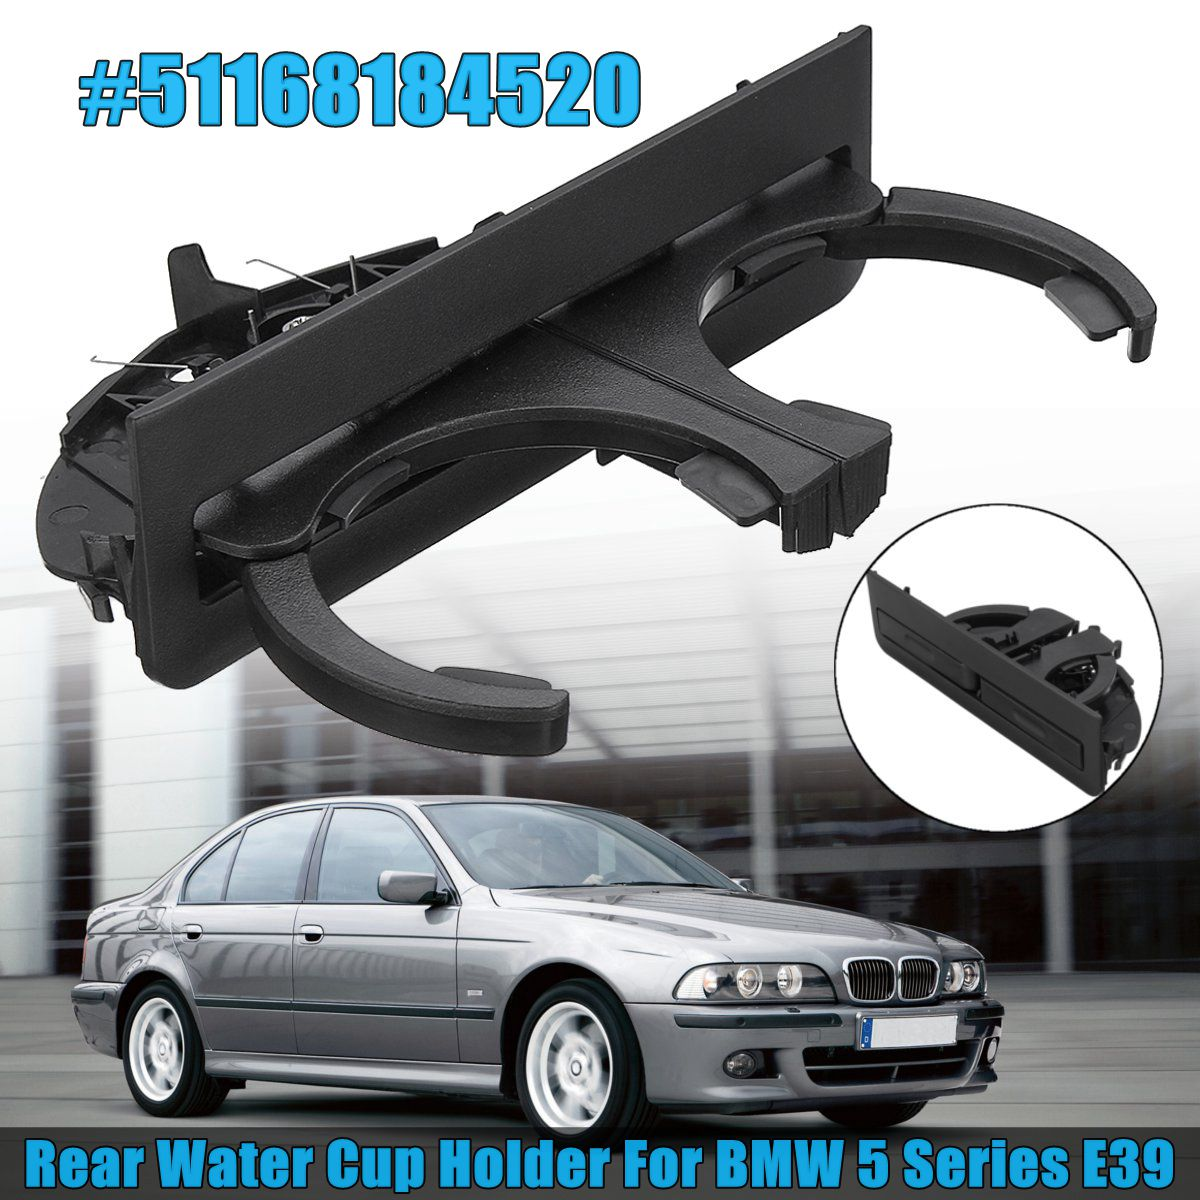 New Black Rear Dual Cup for 2 Drink Water Holder Front for BMW 5 Series E39 #51168184520